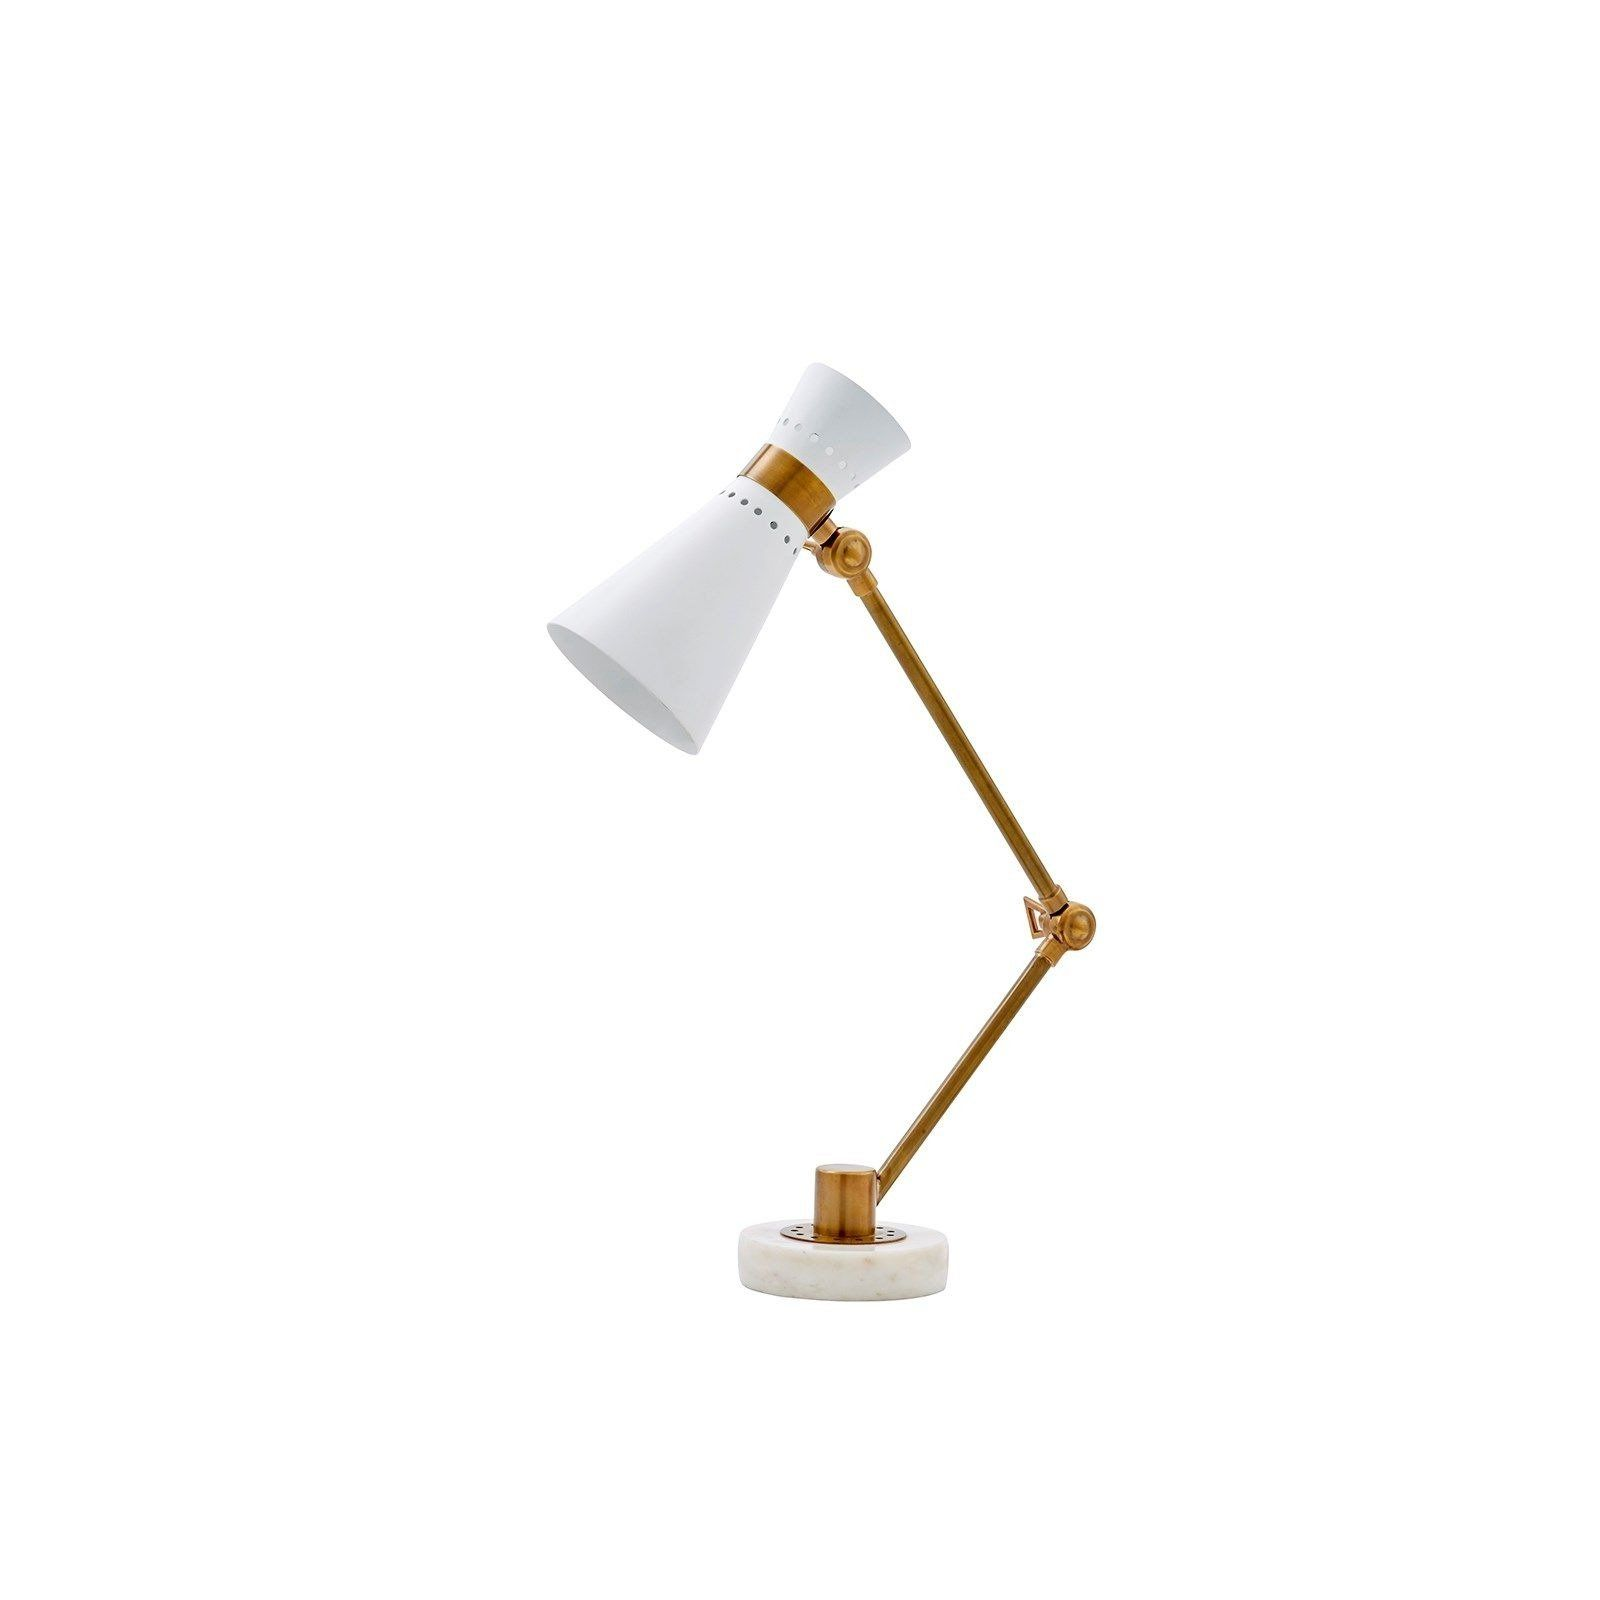 The Clipper Table Lamp In White From Bungalow 5 Features A Perforated Shade Allowing Some Light To Escape For An Enchanting Vi In 2020 Table Lamp Lamp White Table Lamp